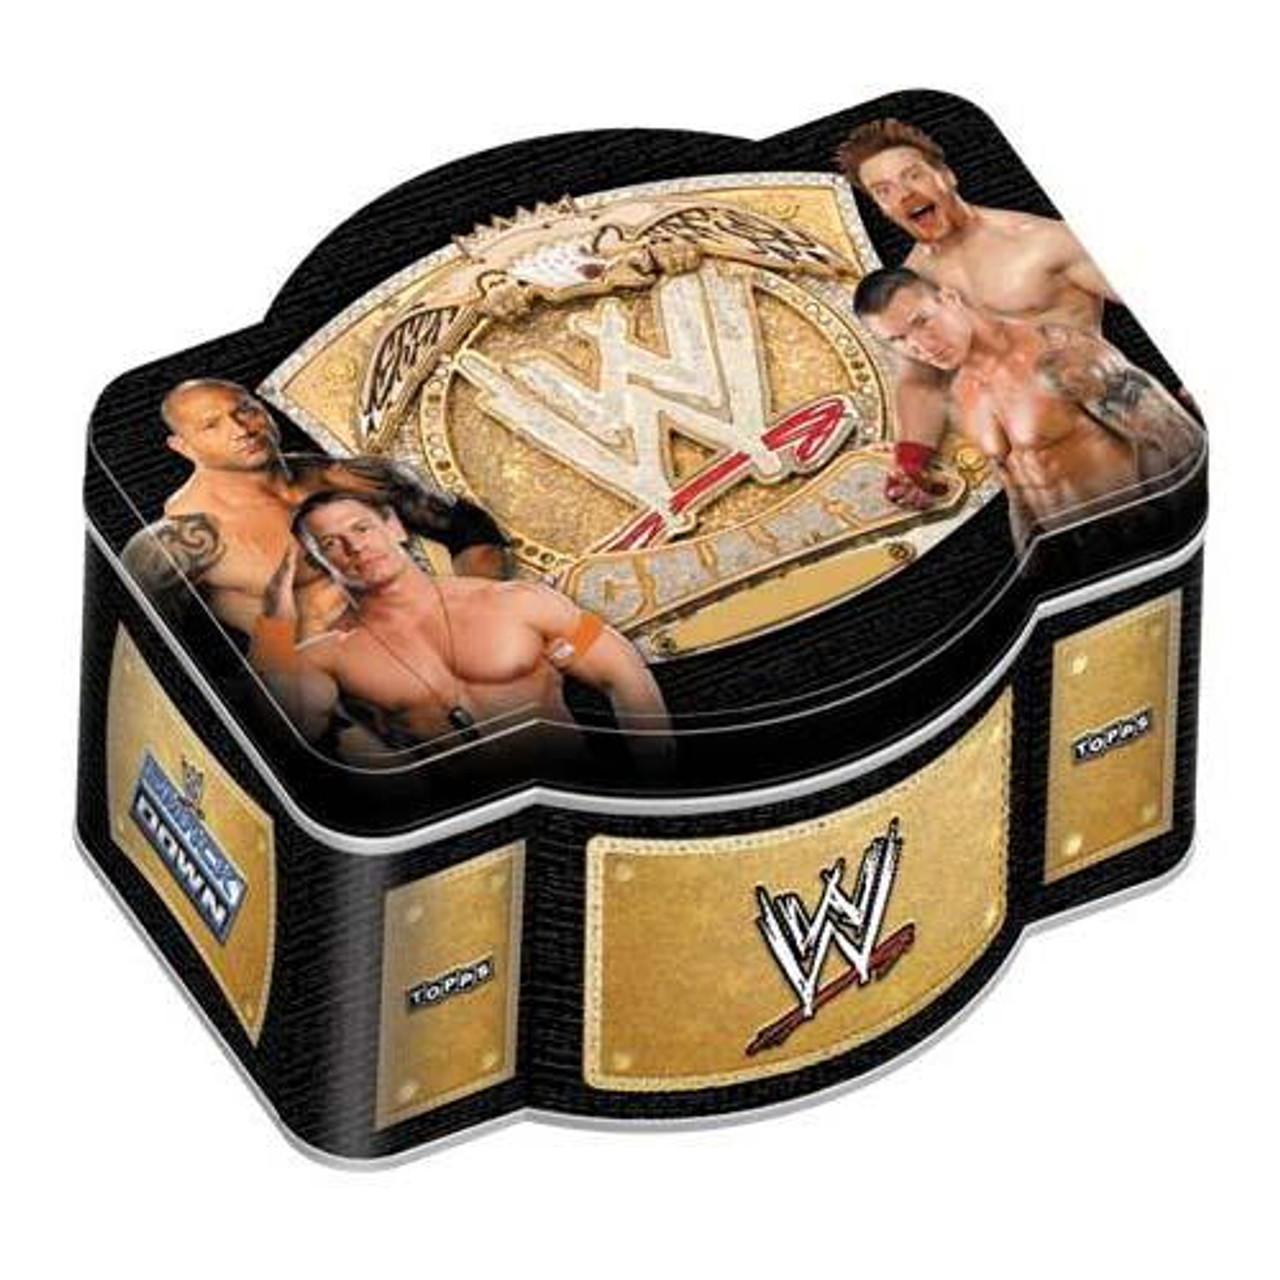 WWE Wrestling 2010 WWE World Heavyweight Champion Trading Card Tin